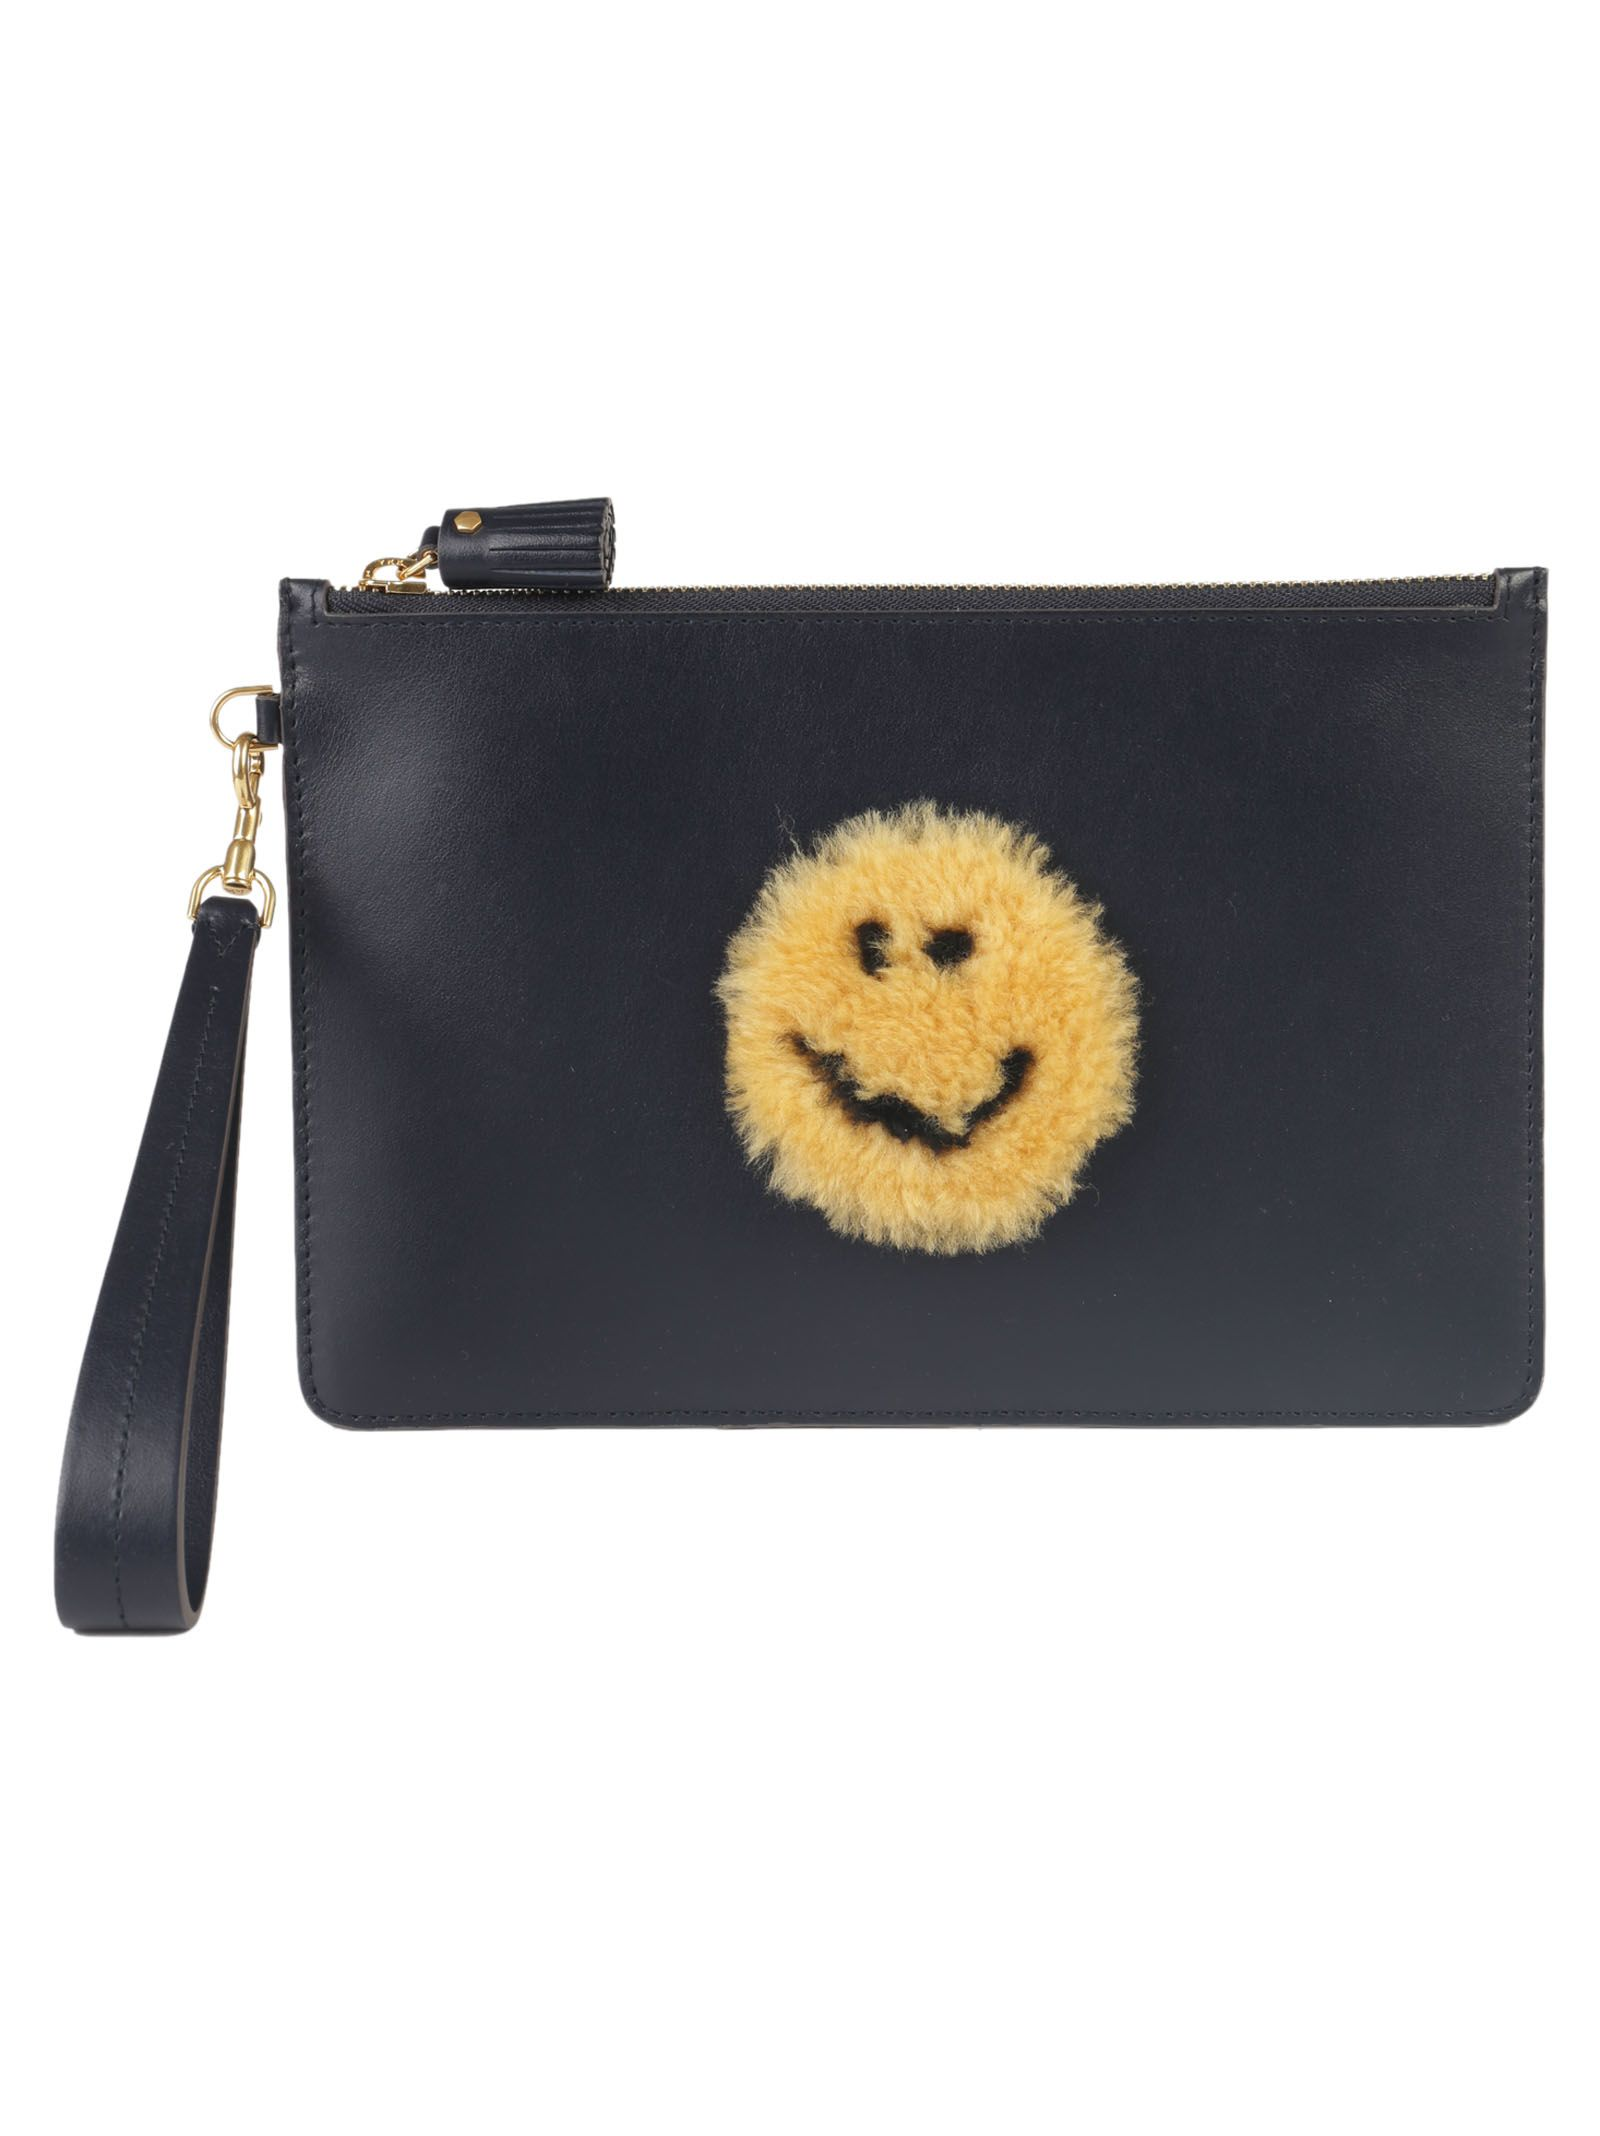 Anya Hindmarch Smiley Zip-top Pouch